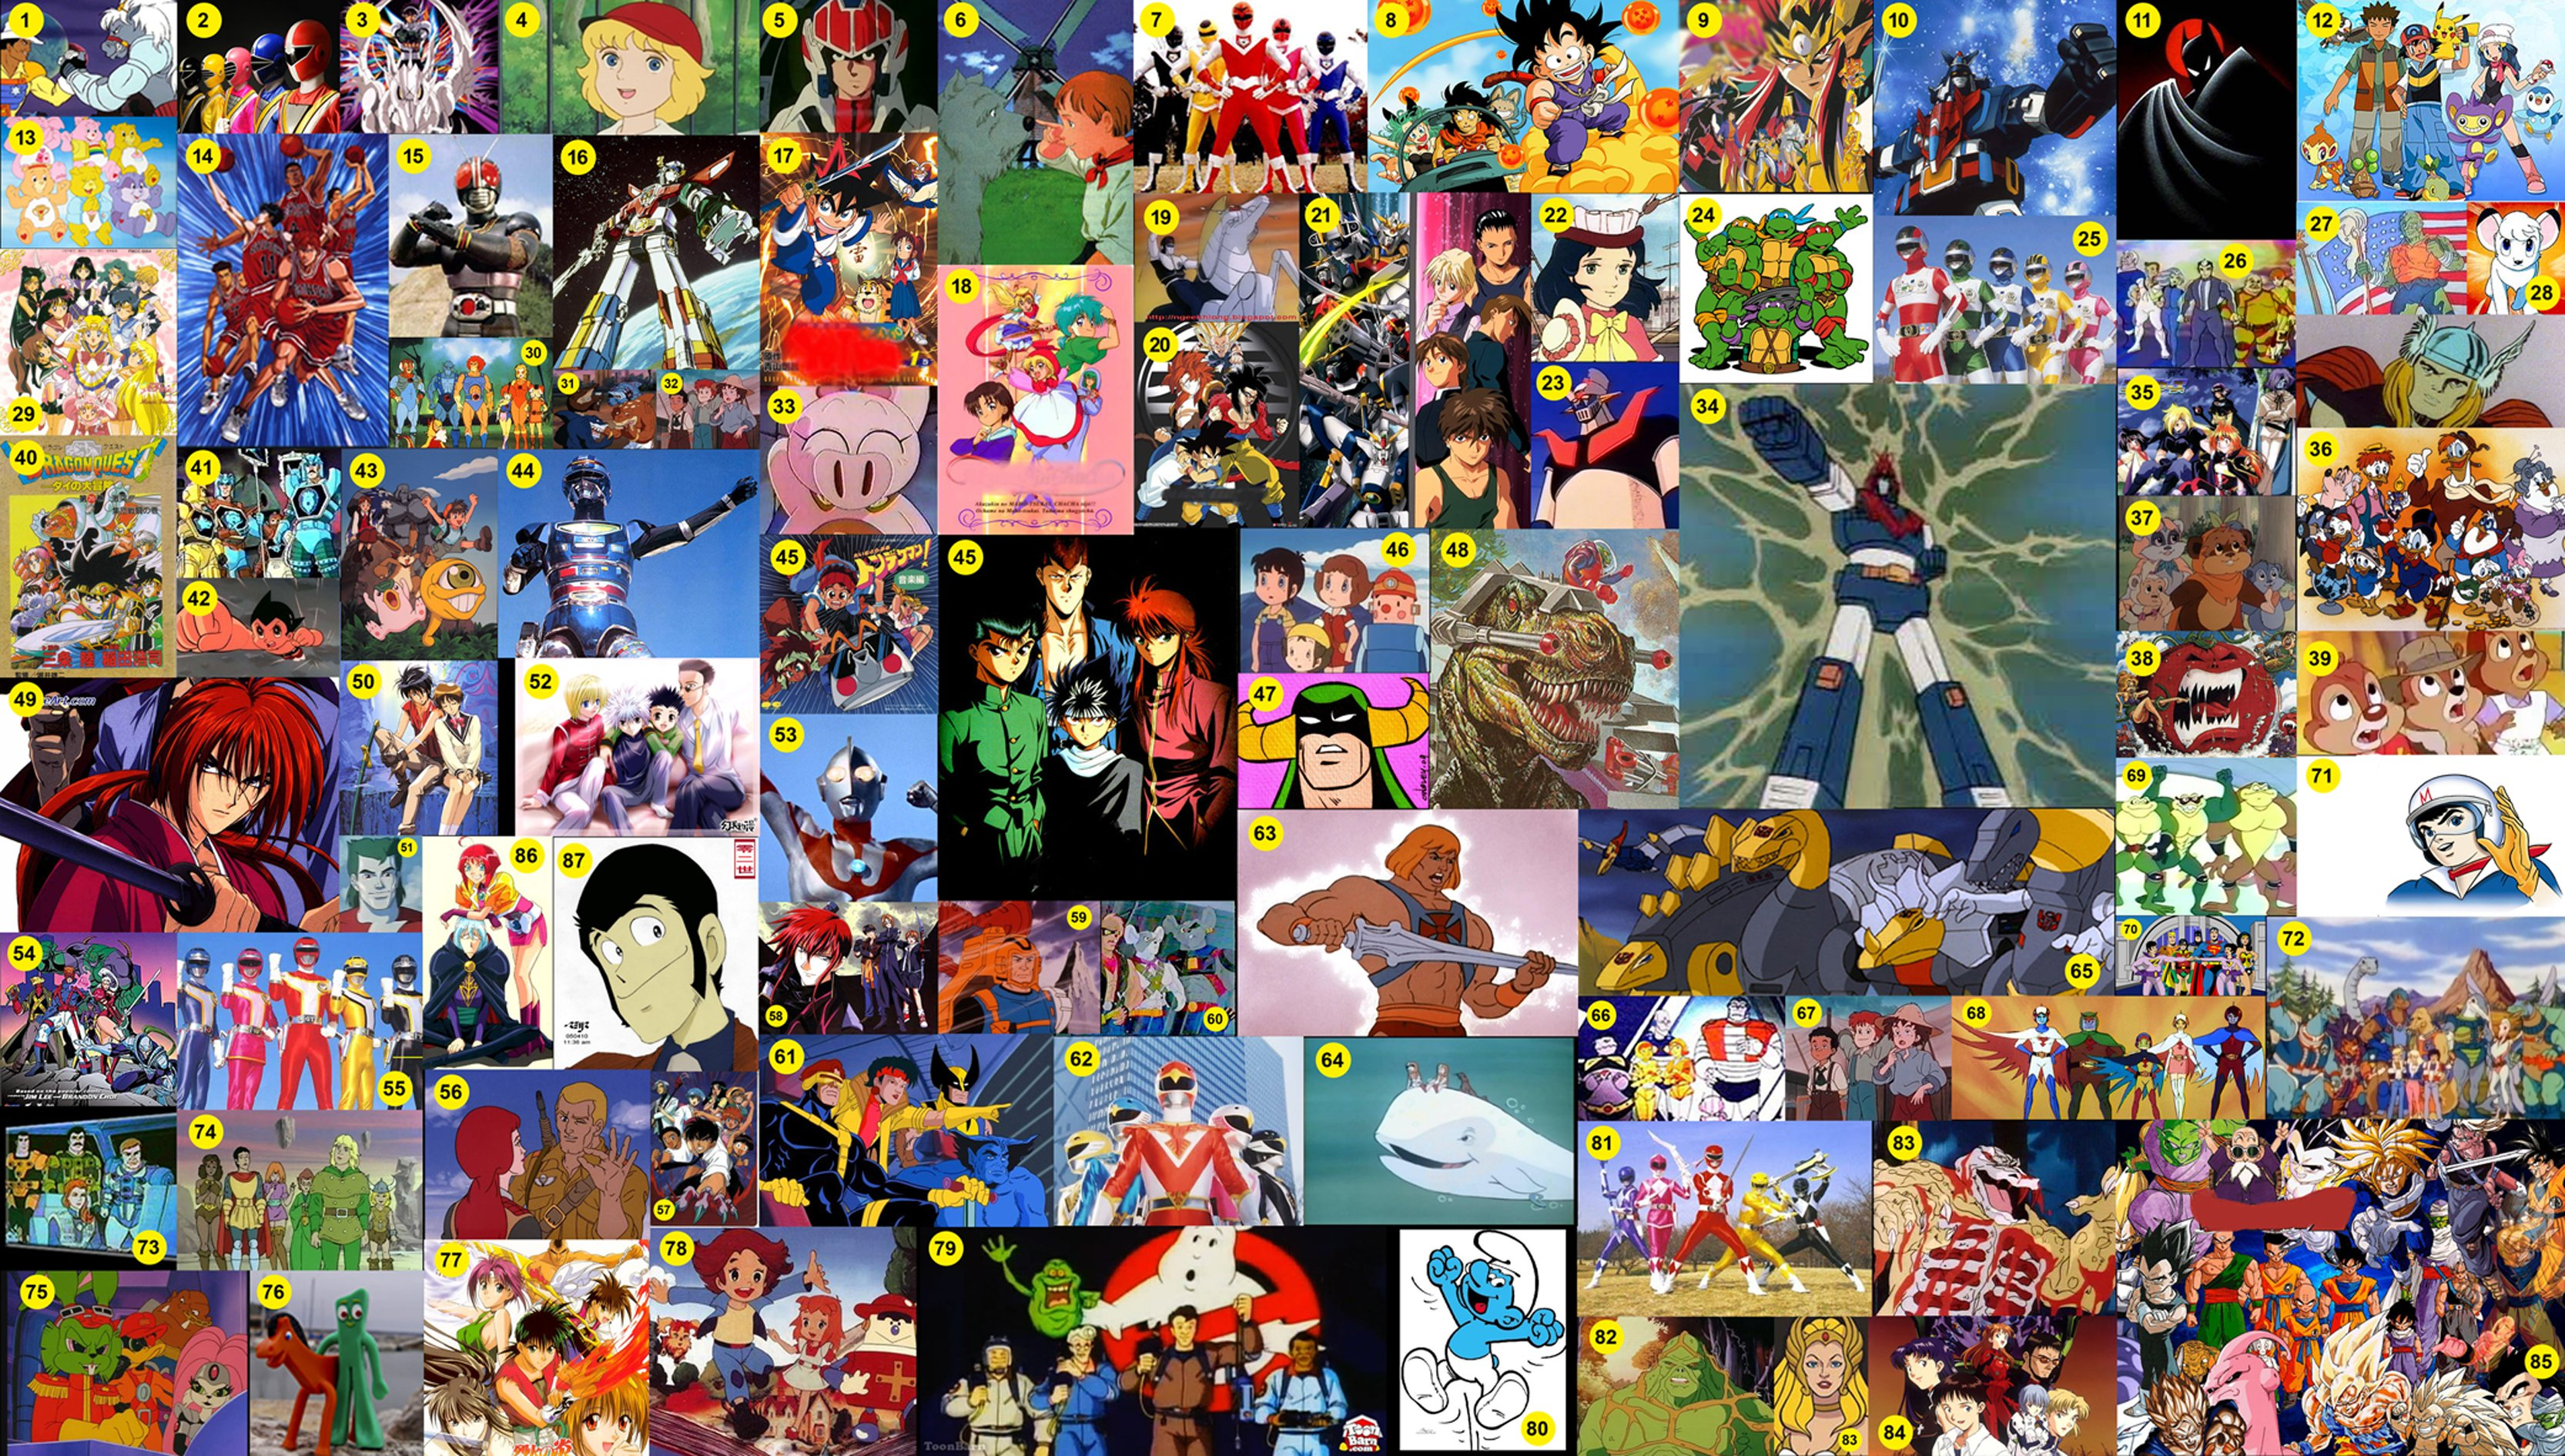 49 80 39 s cartoon wallpaper on wallpapersafari - 90s cartoon wallpaper ...